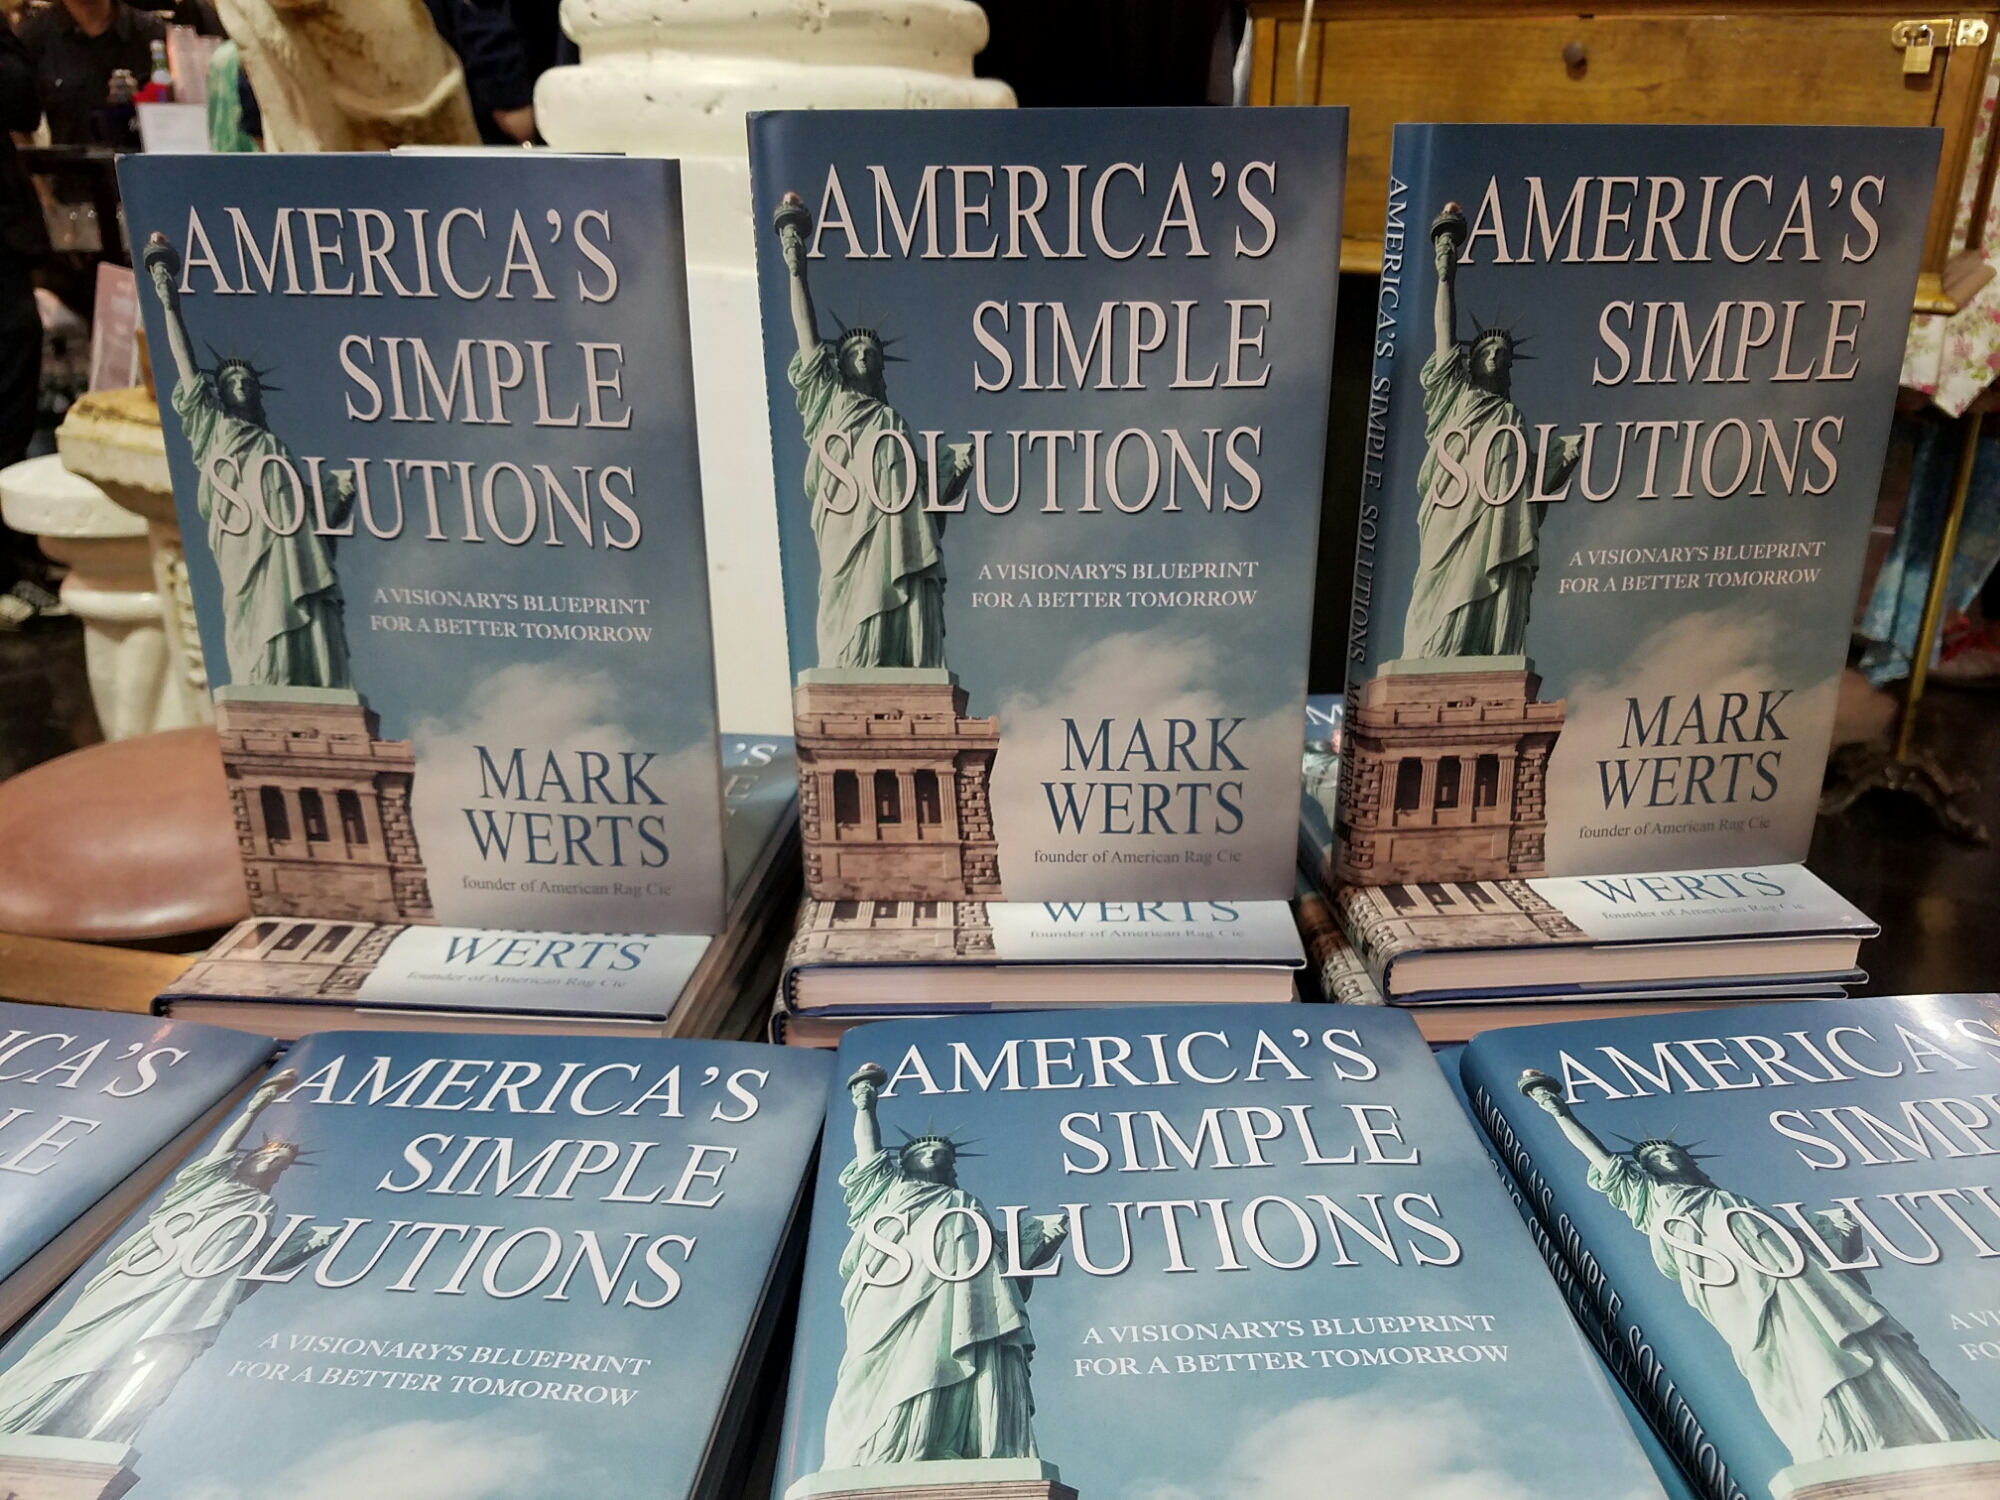 American rags ceo mark werts launches americas simple solutions american rags ceo mark werts launches americas simple solutions book lempereur magazine malvernweather Gallery